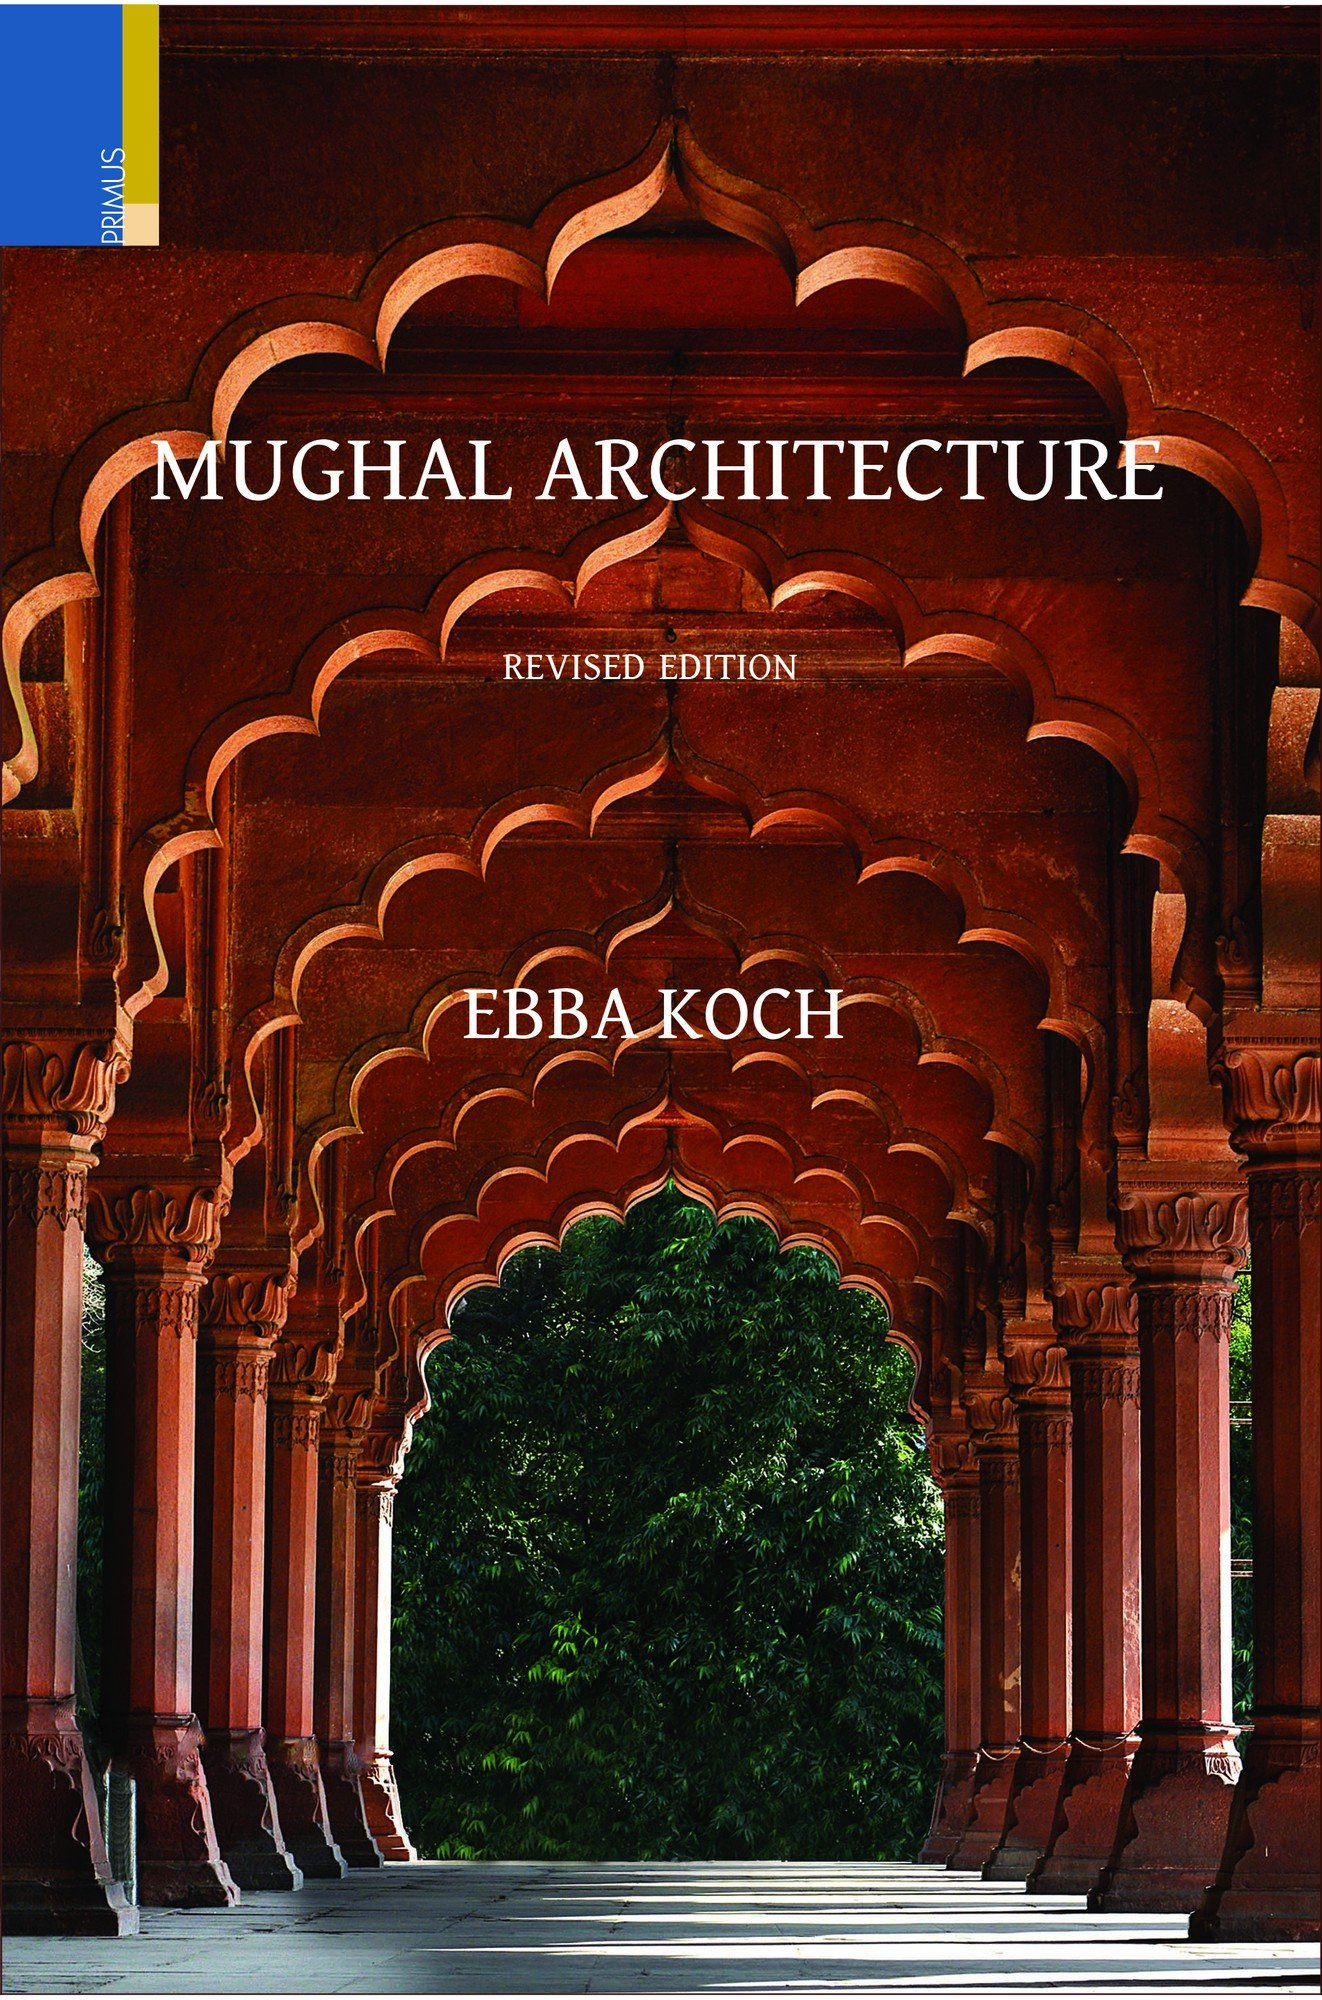 buy mughal architecture an outline of its history and development 1526 1858 book online at low prices in india mughal architecture an outline of its